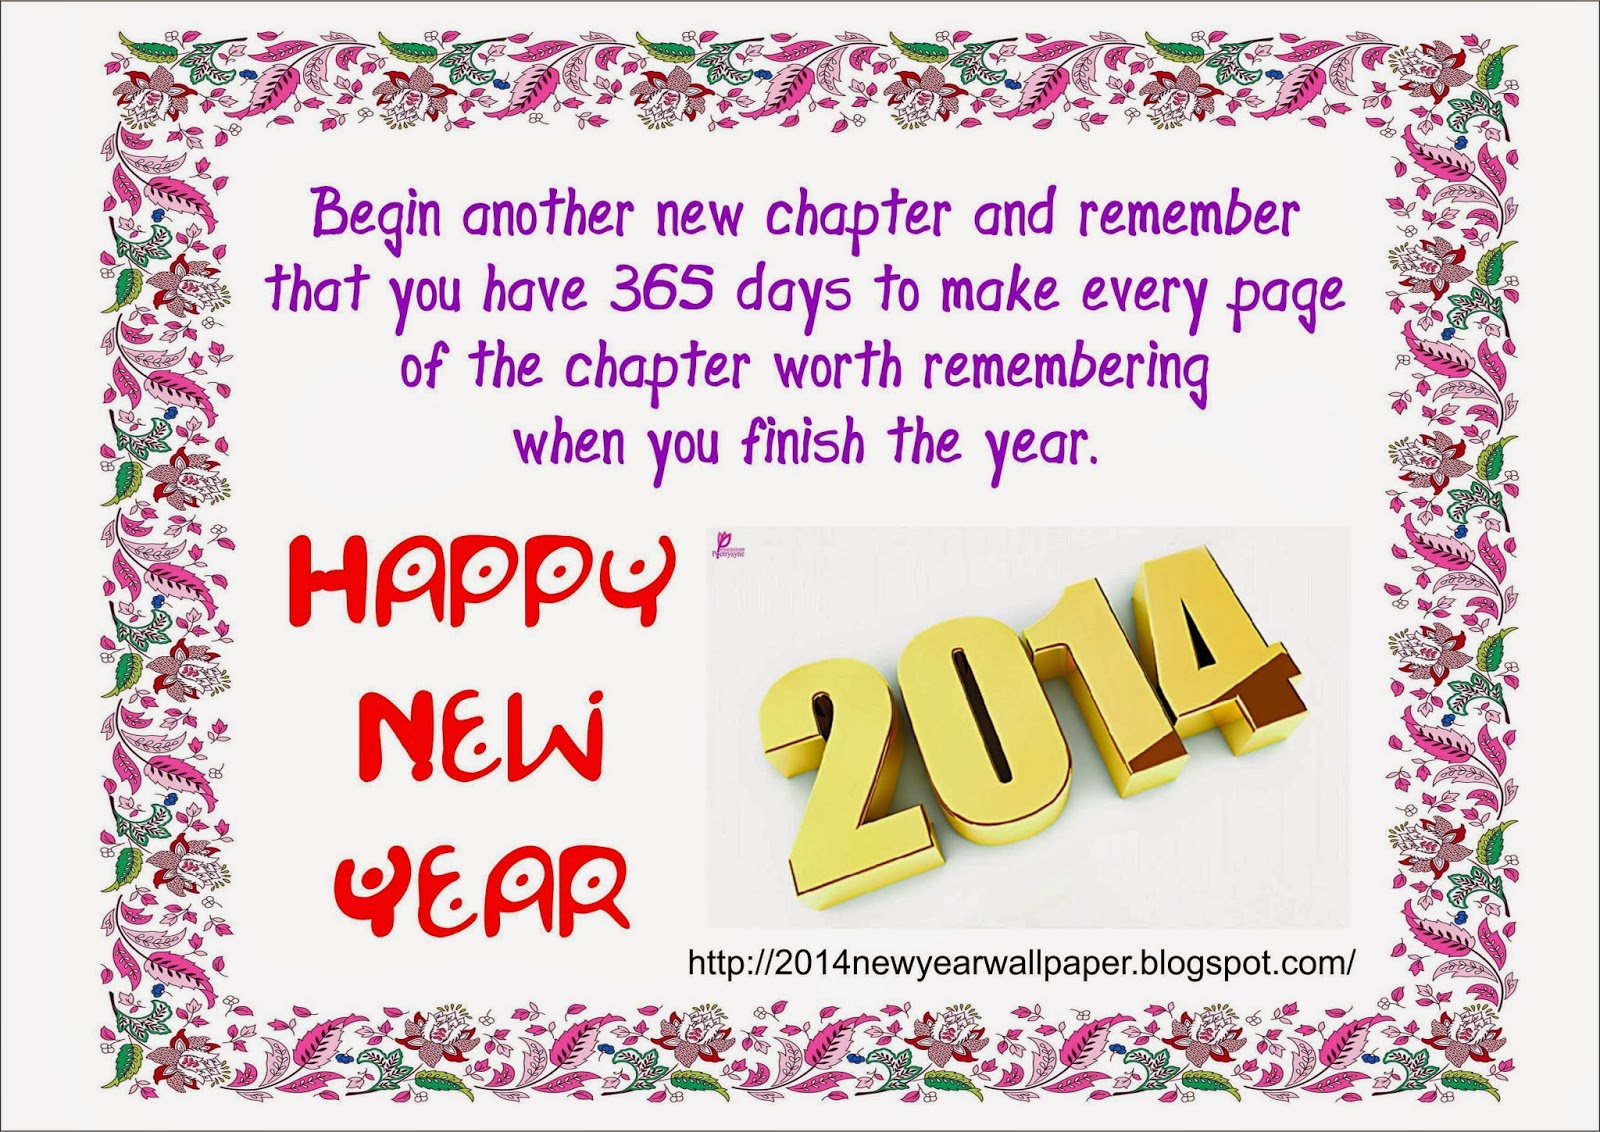 Happy New Year 2014 Wishes - Greetings -sms wallpaper ...